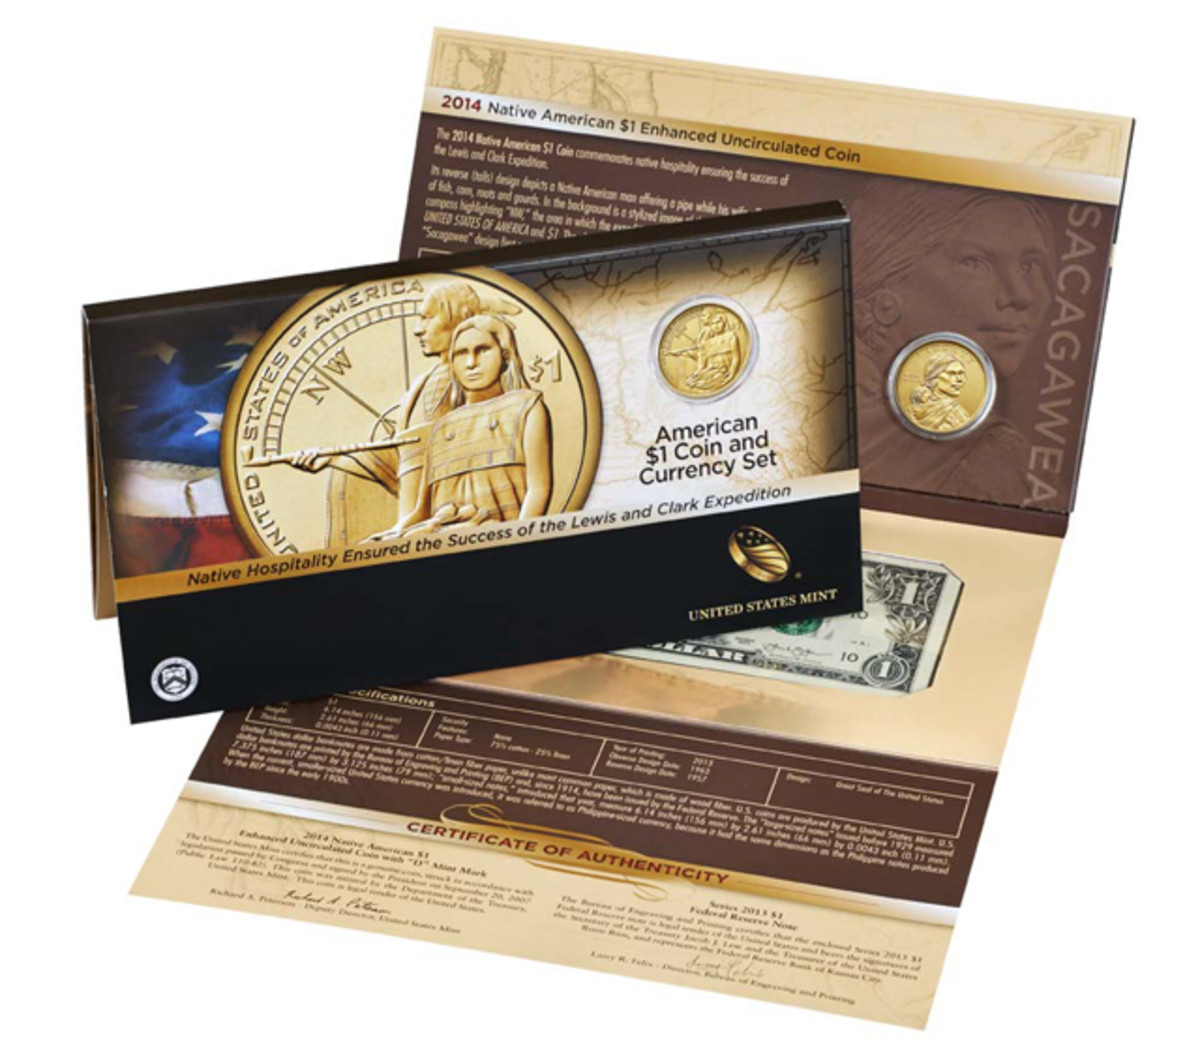 The 2014 Native American dollar coin and currency set features an enhanced uncirculated finish on the coin.